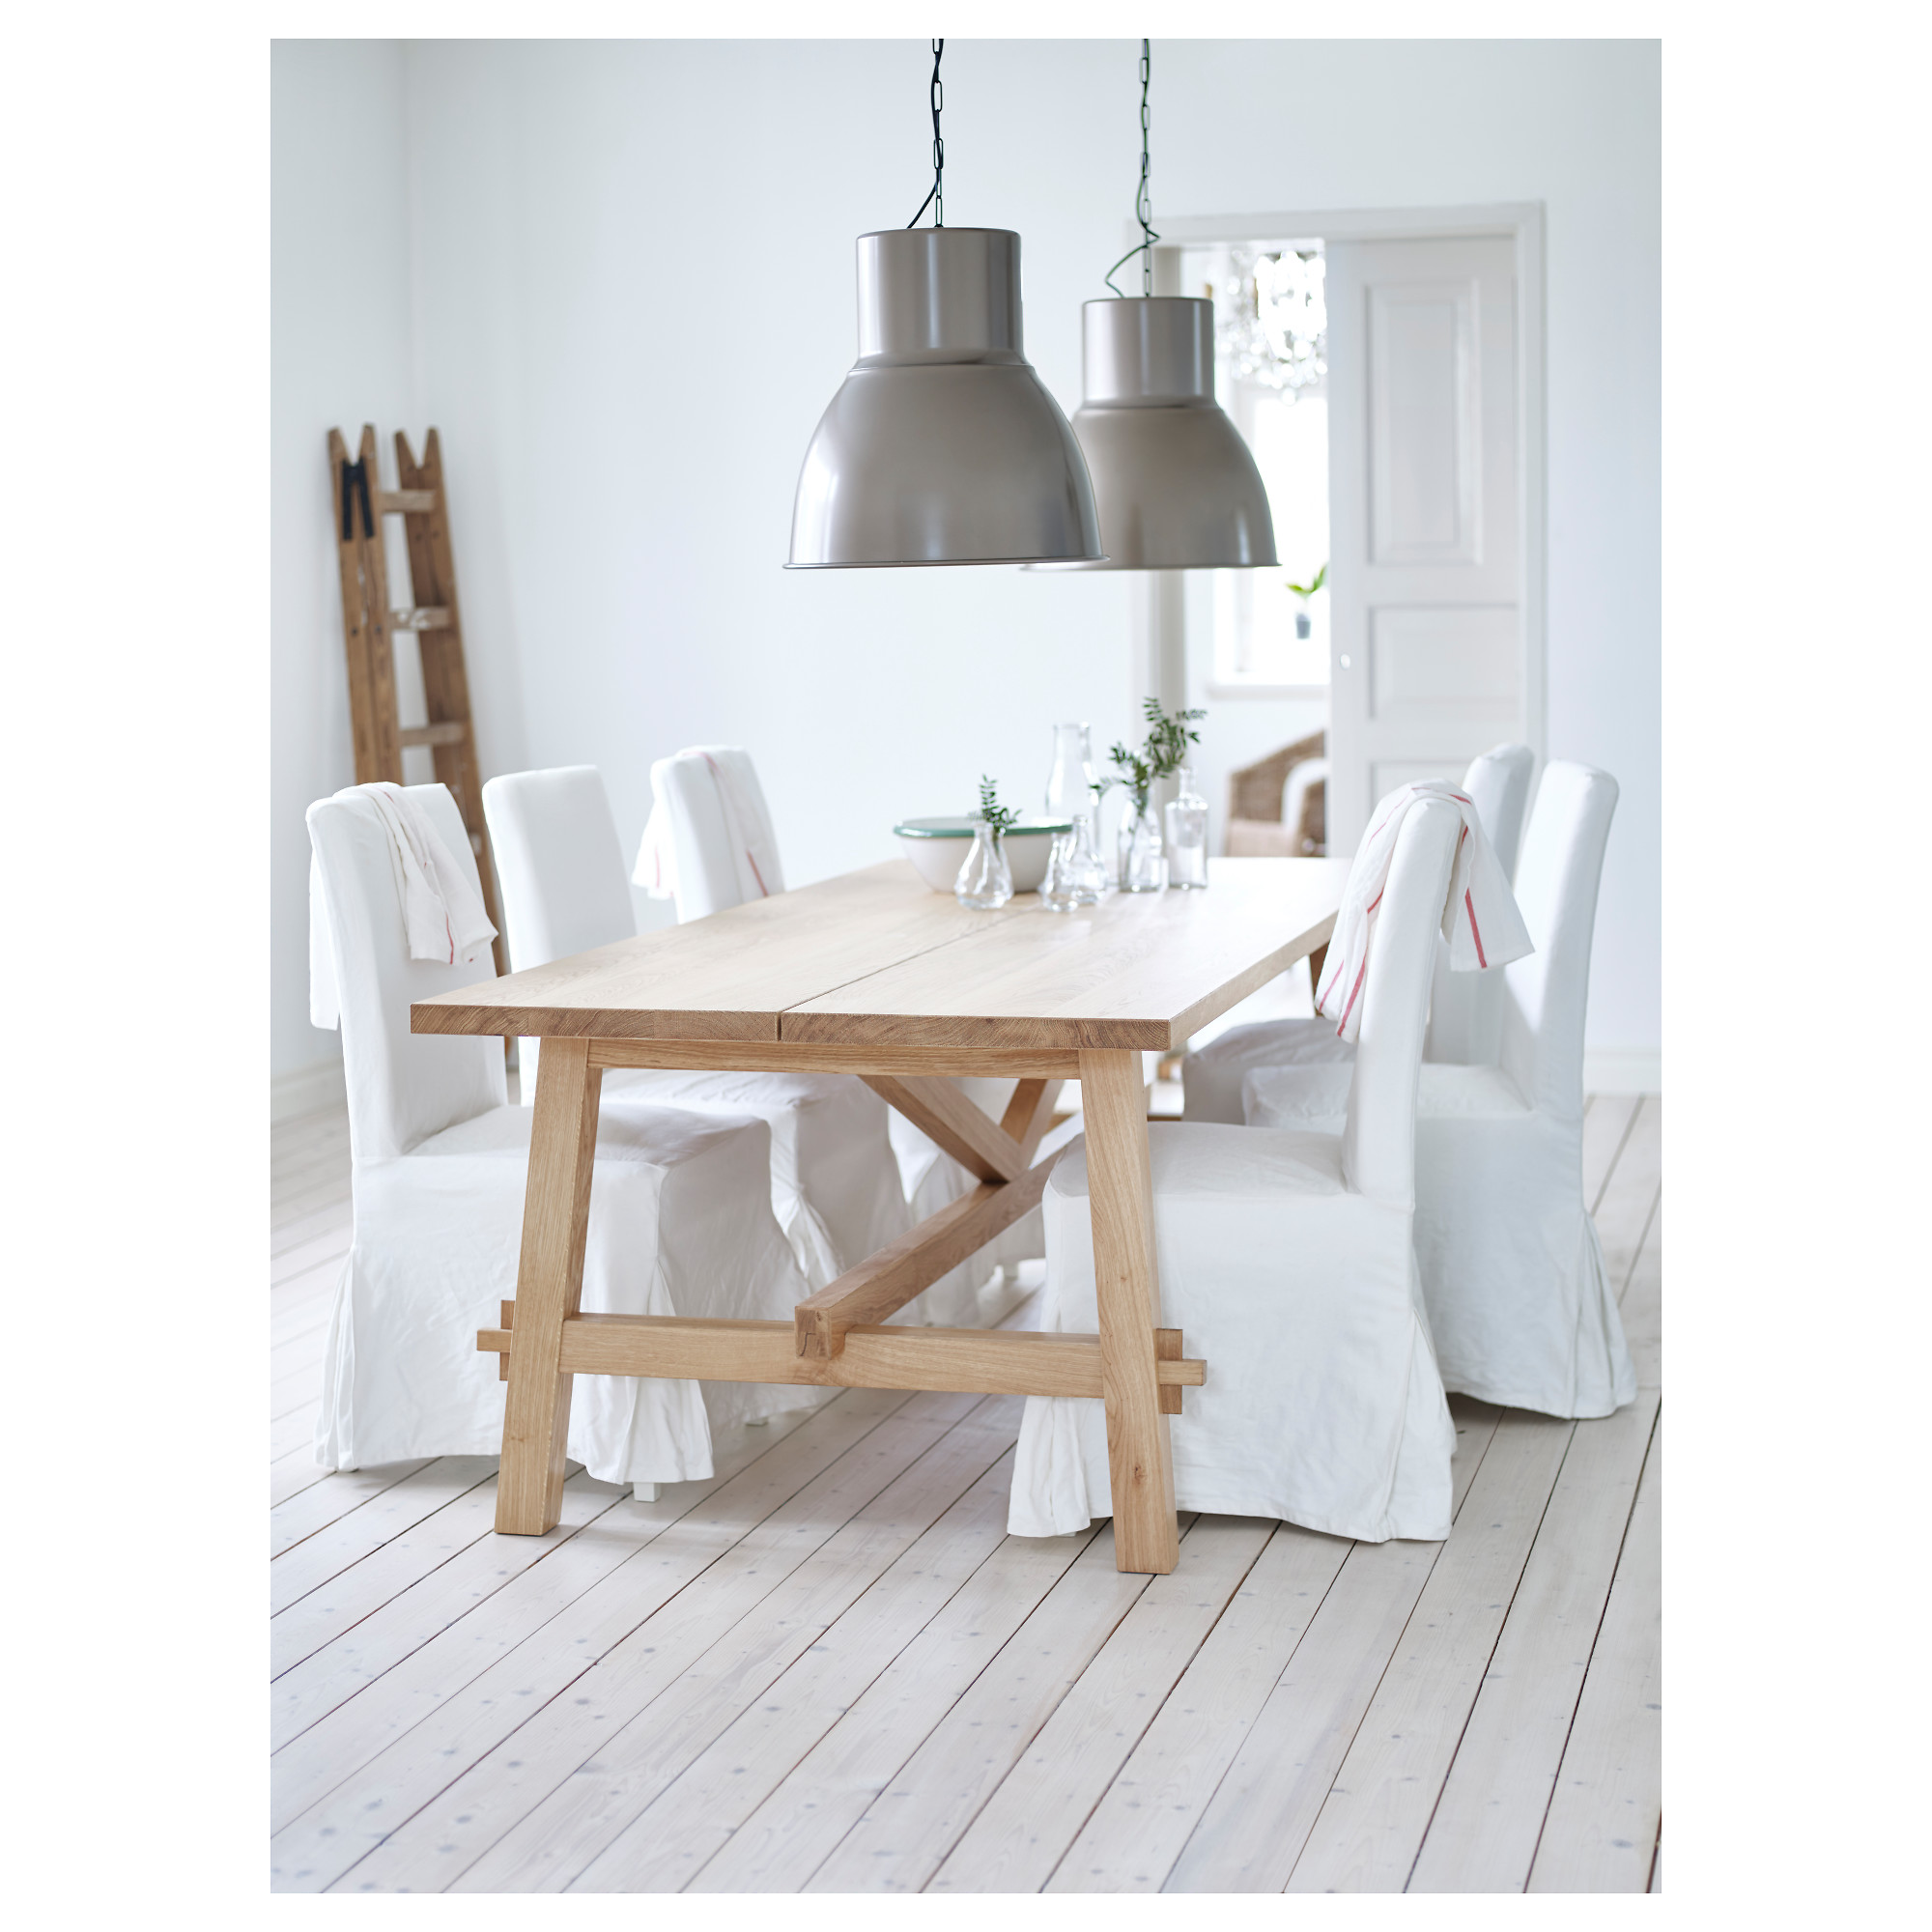 Ikea Malaysia Dining Set Ikea Ikea Oak Dining Chairs Uk.jpg. Apartment. Full resolution‎  portraiture, nominally Width 2000 Height 2000 pixels, portraiture with #664B3B.